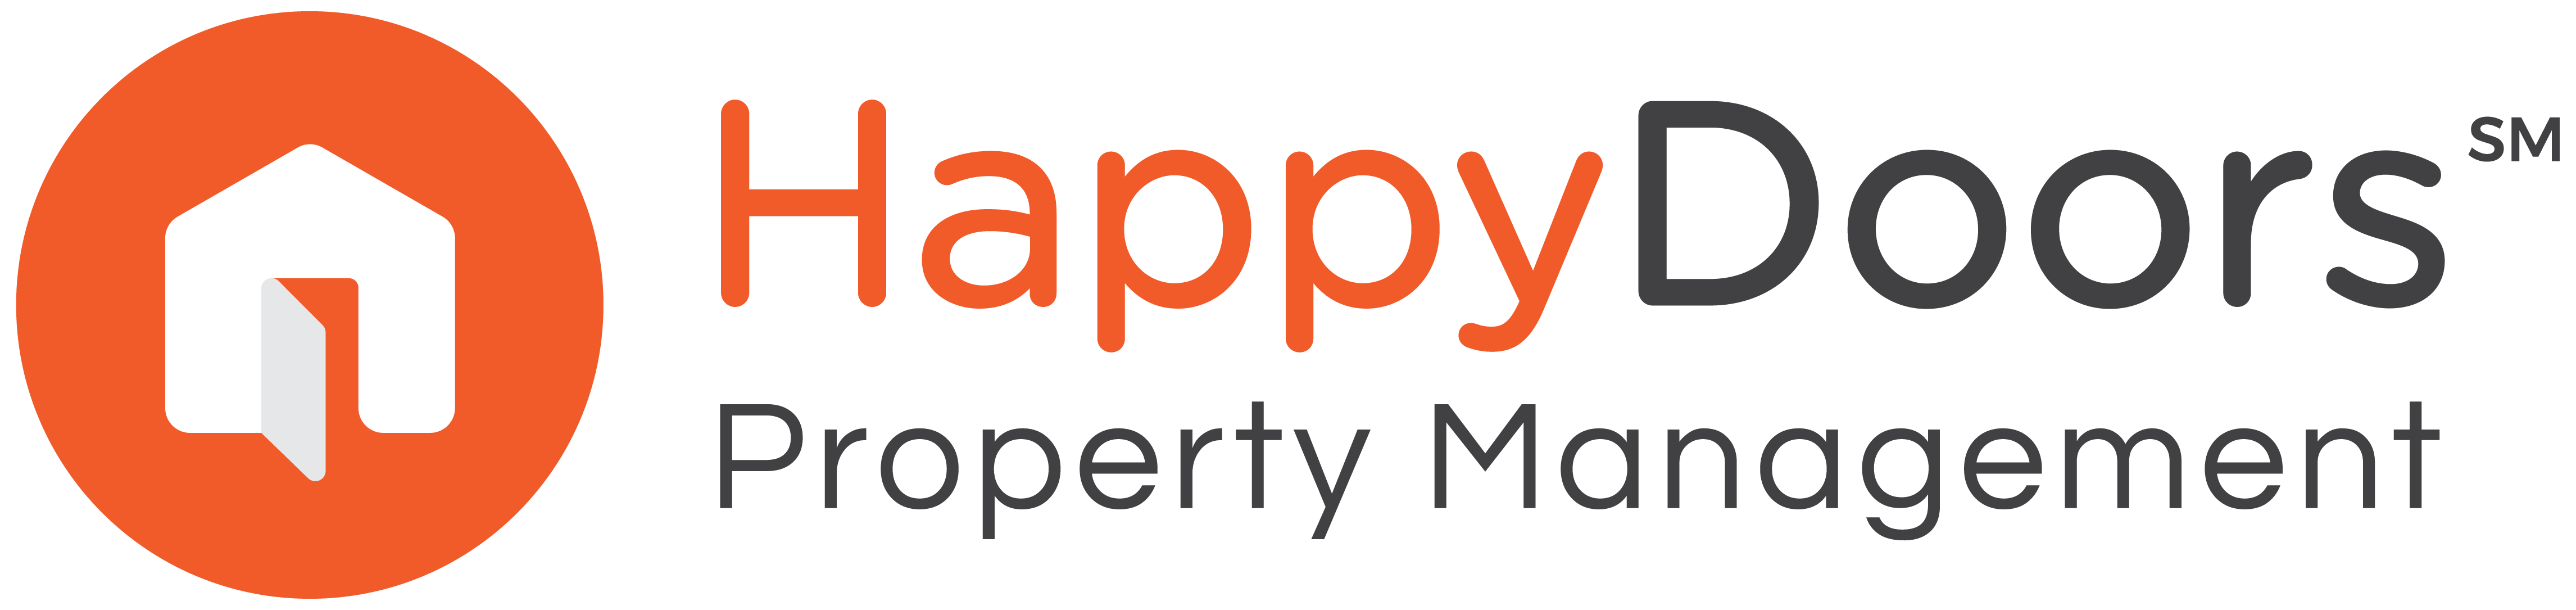 HappyDoors Property Management